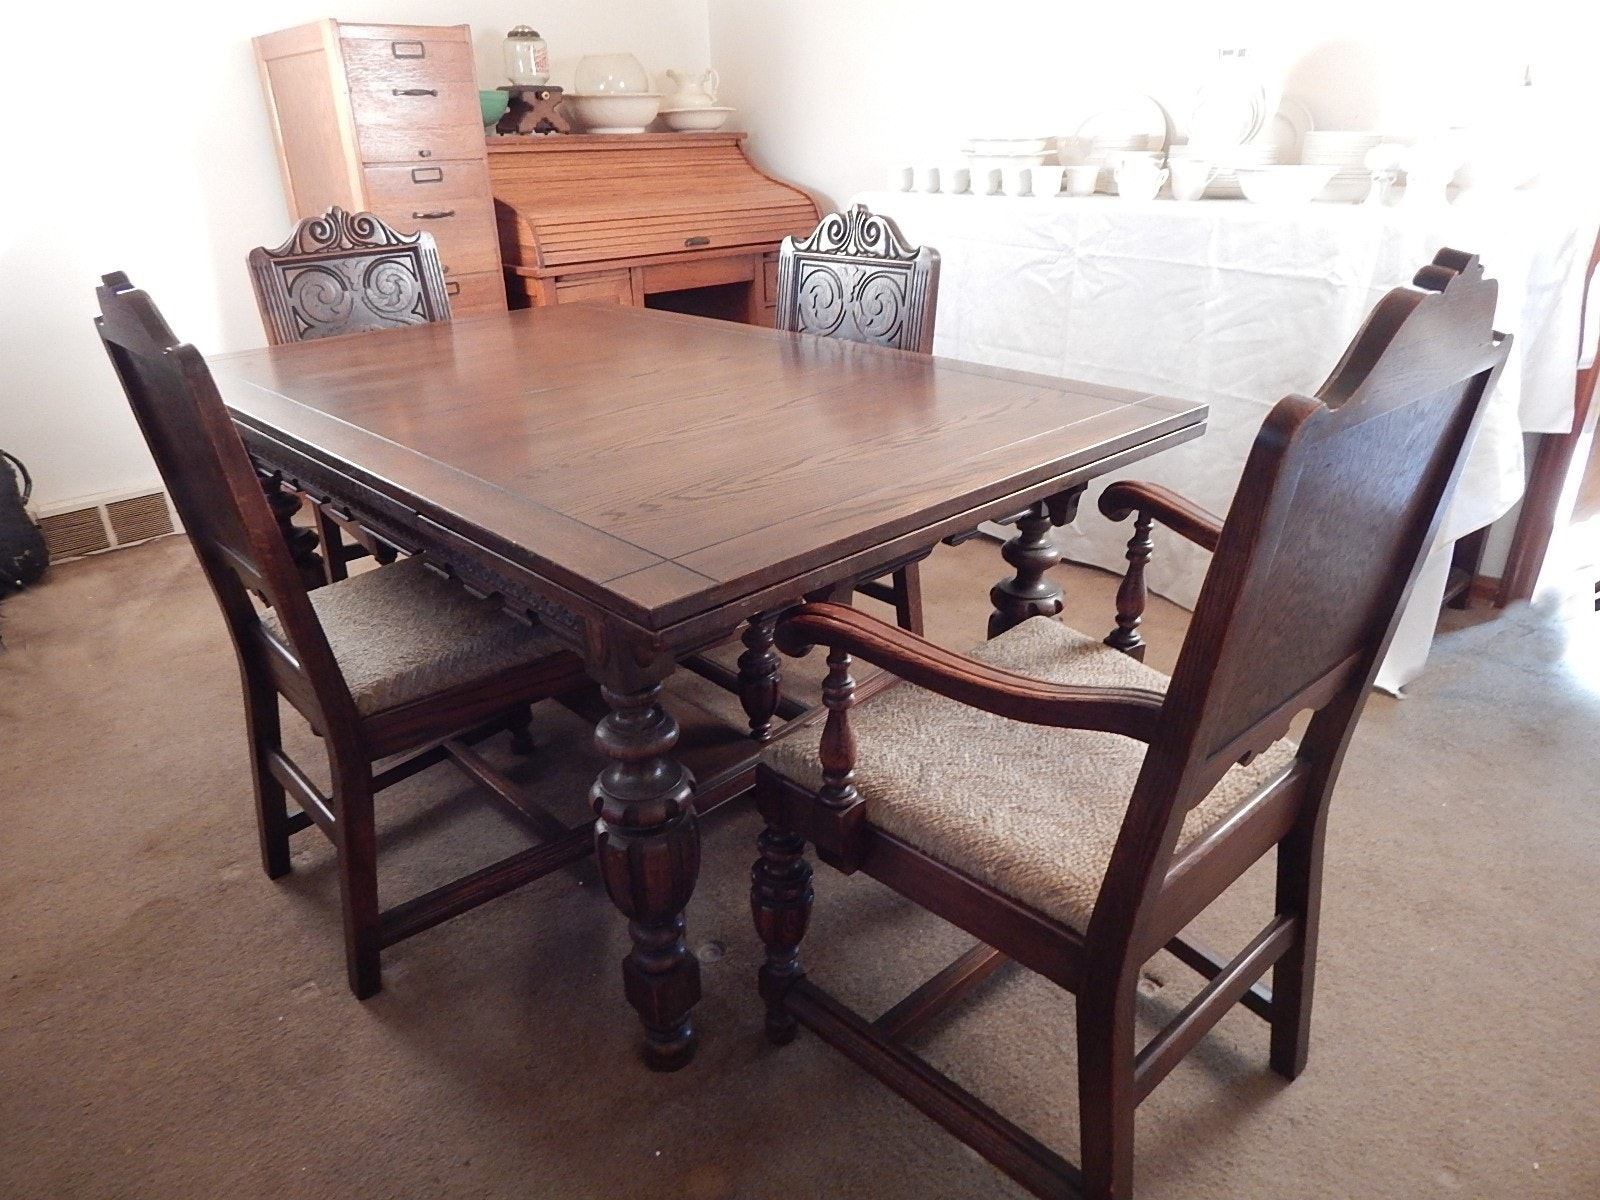 wood dining tables for sale 1930 s jacobean revival carved oak table chairs ebth 1930